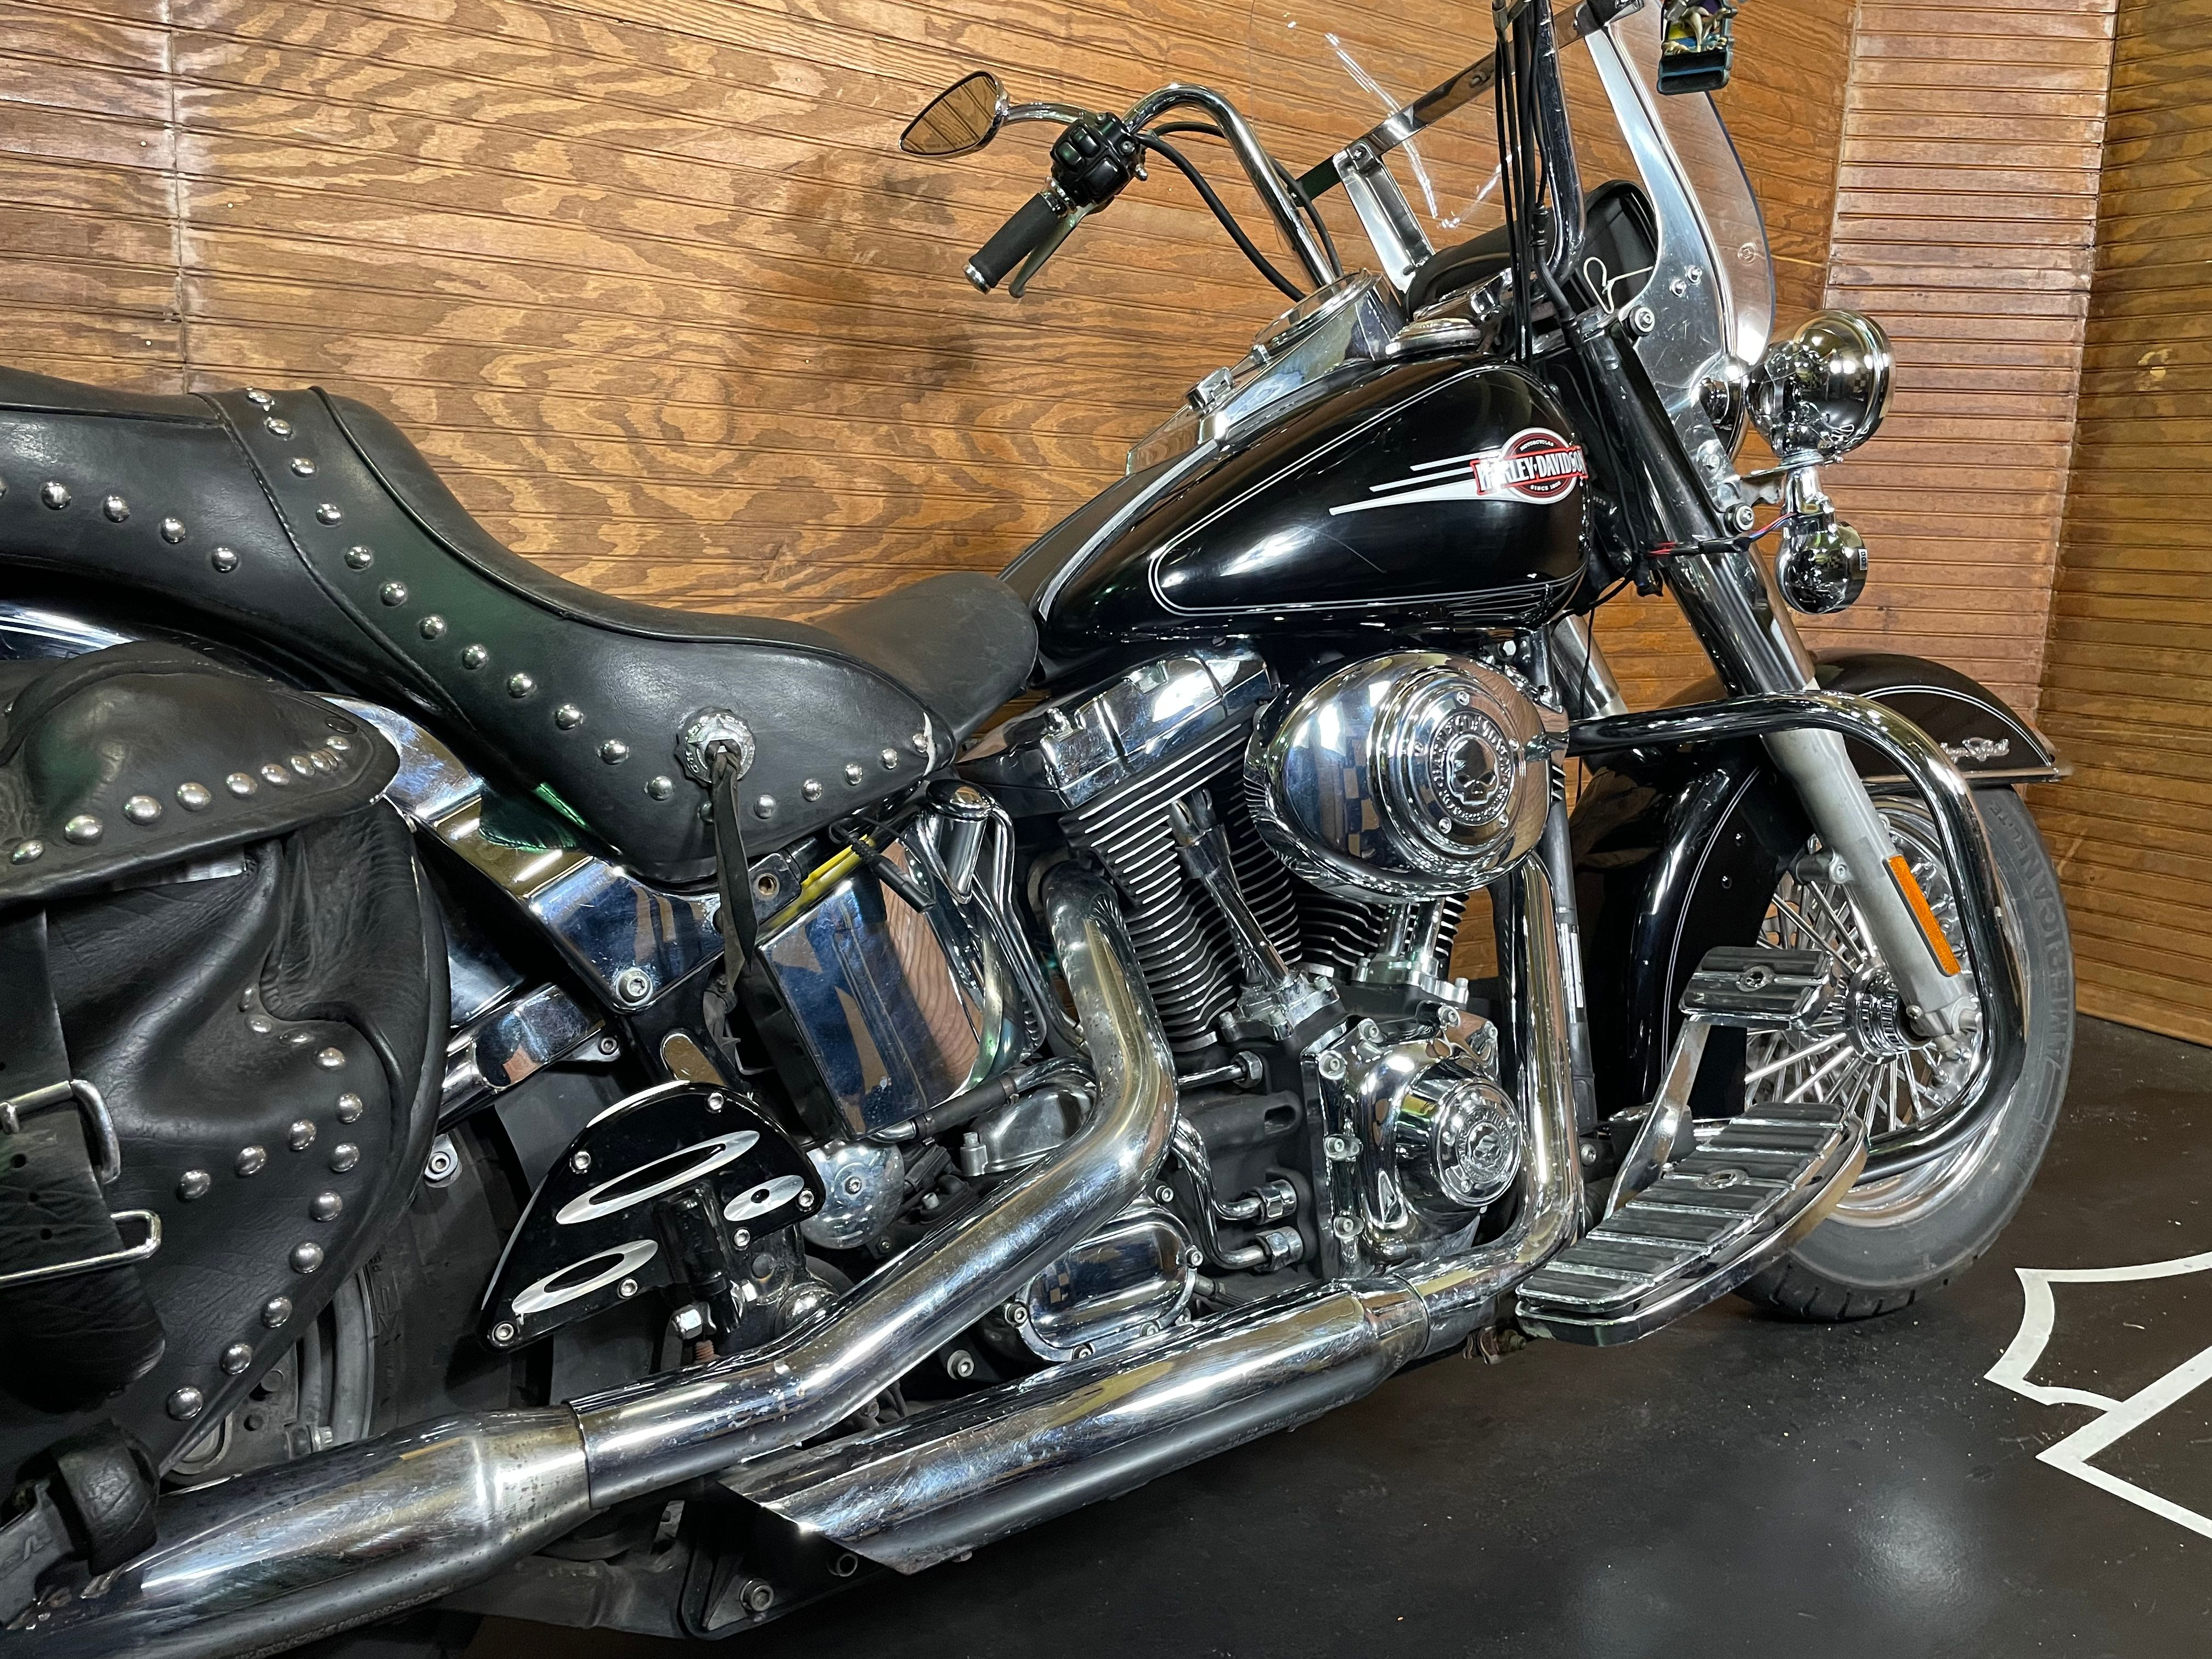 Pre-Owned 2005 Harley-Davidson Heritage Softail Classic